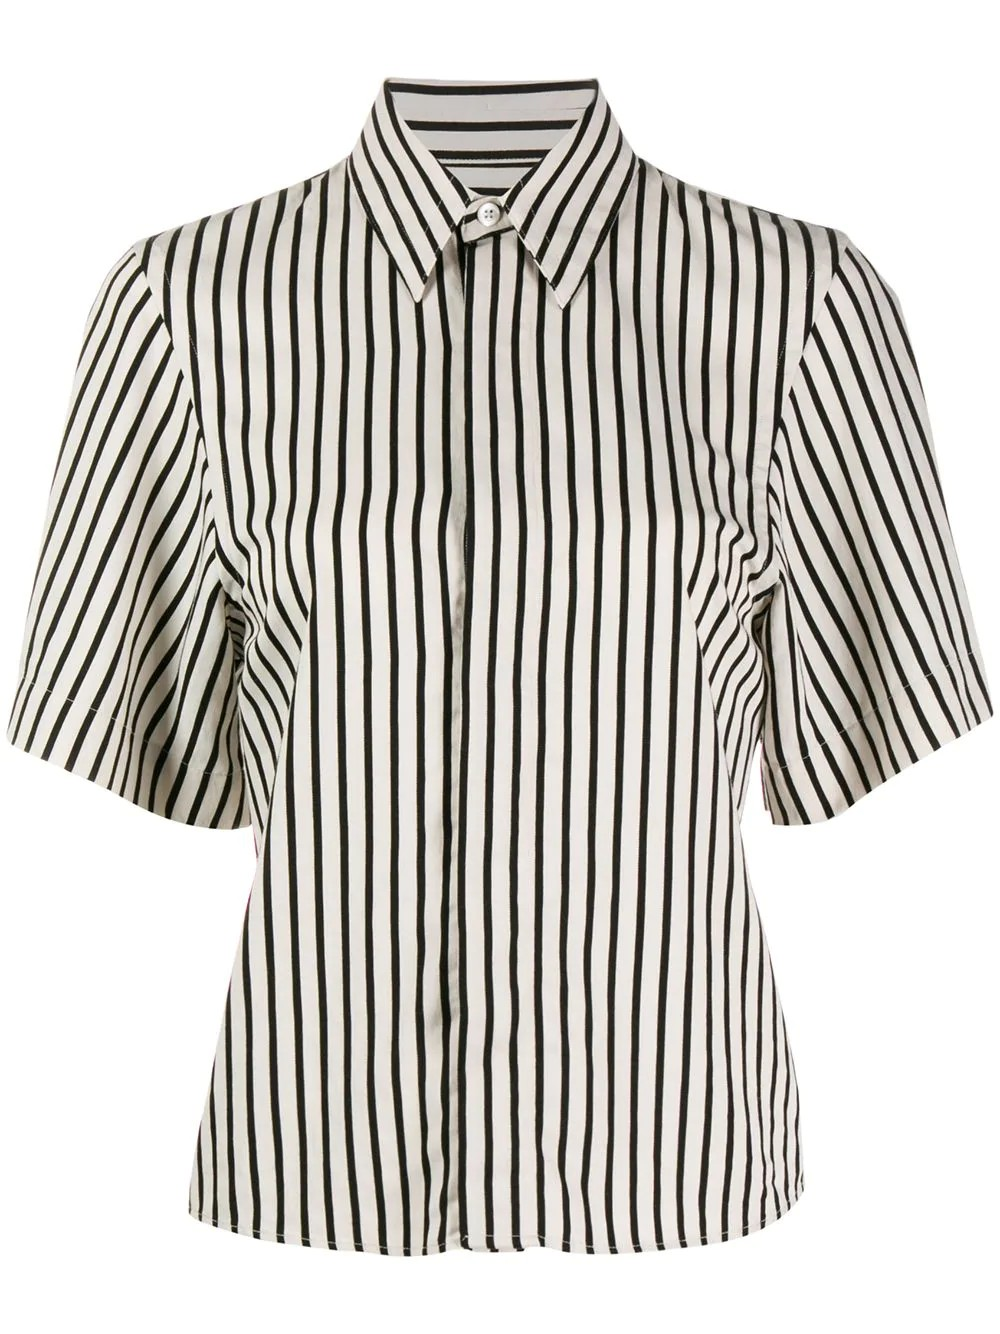 WOMAN SHORT SLEEVES SHIRT WITH INVISIBLE BUTTON PLACKET STRIPED VISCOSE